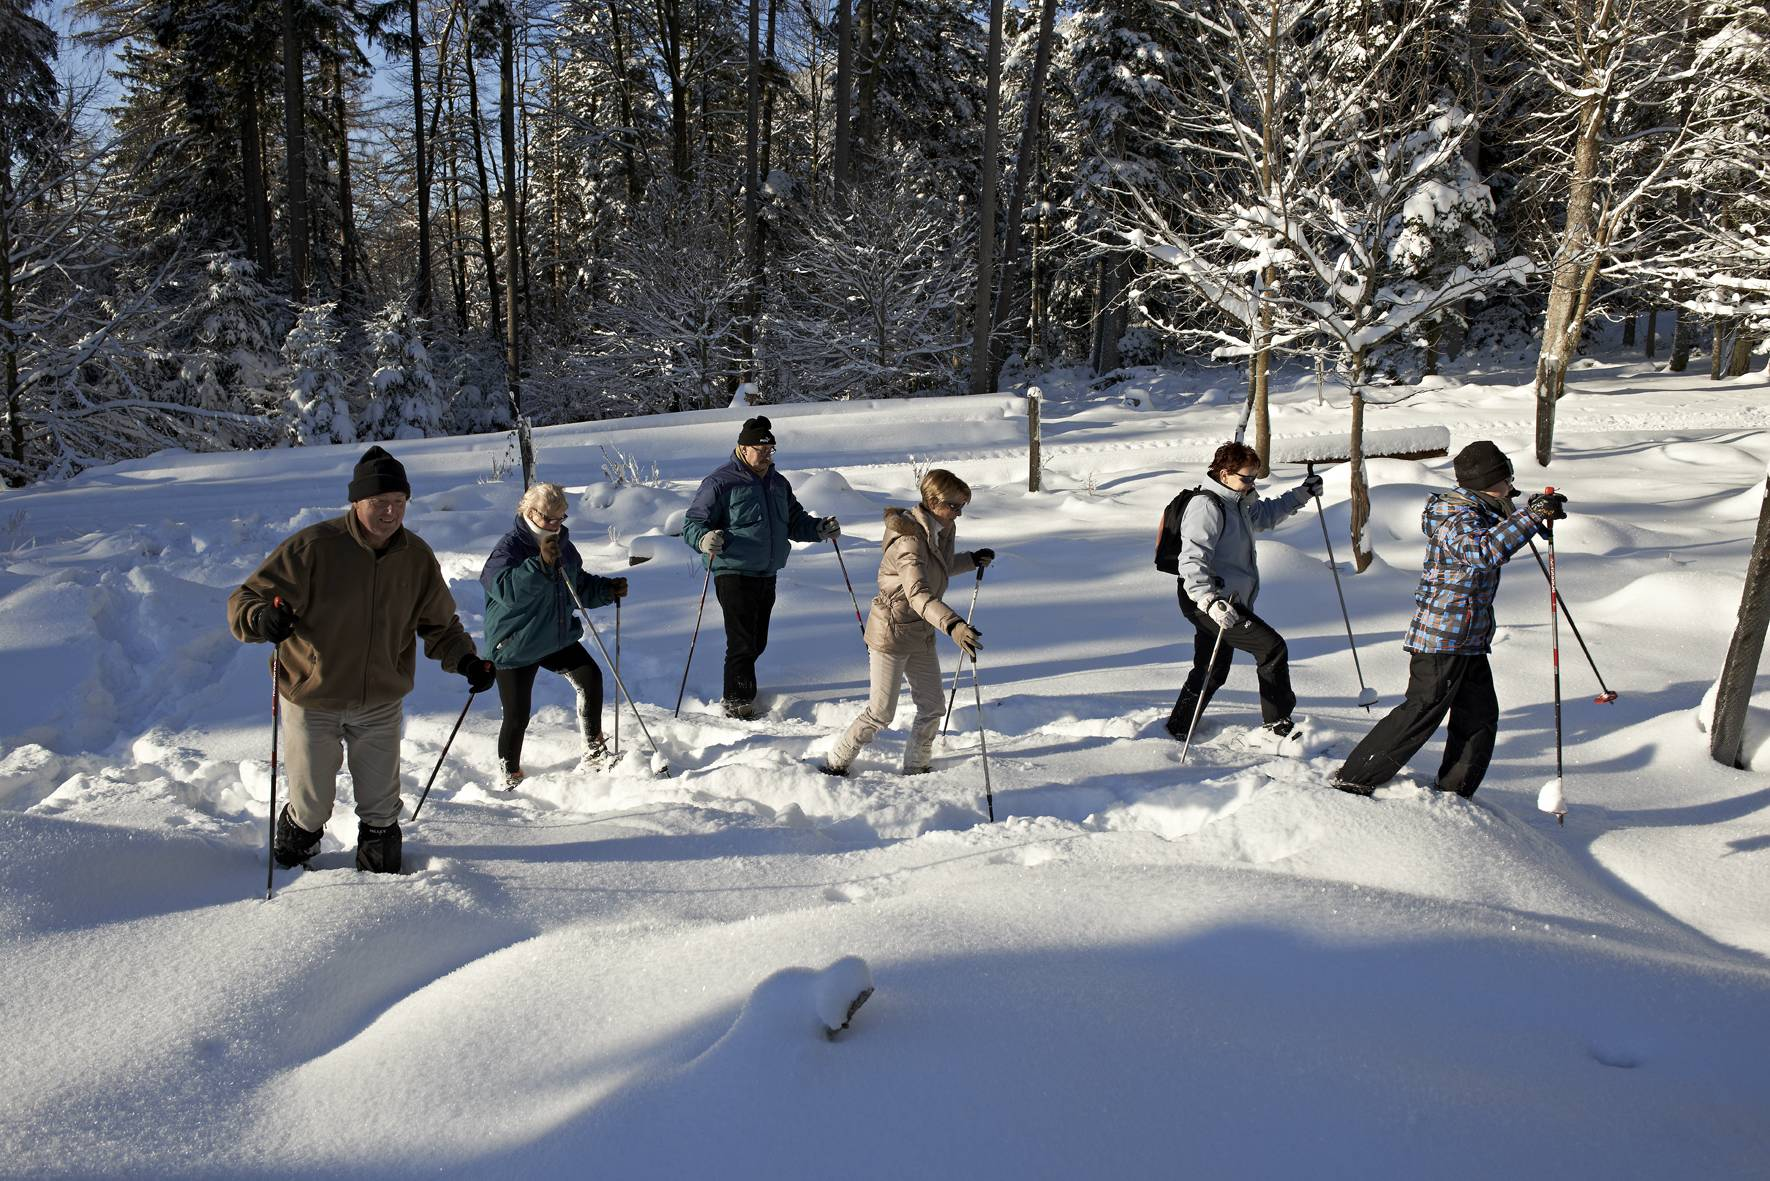 Cross-country skiing and snowshoeing at the Donon area